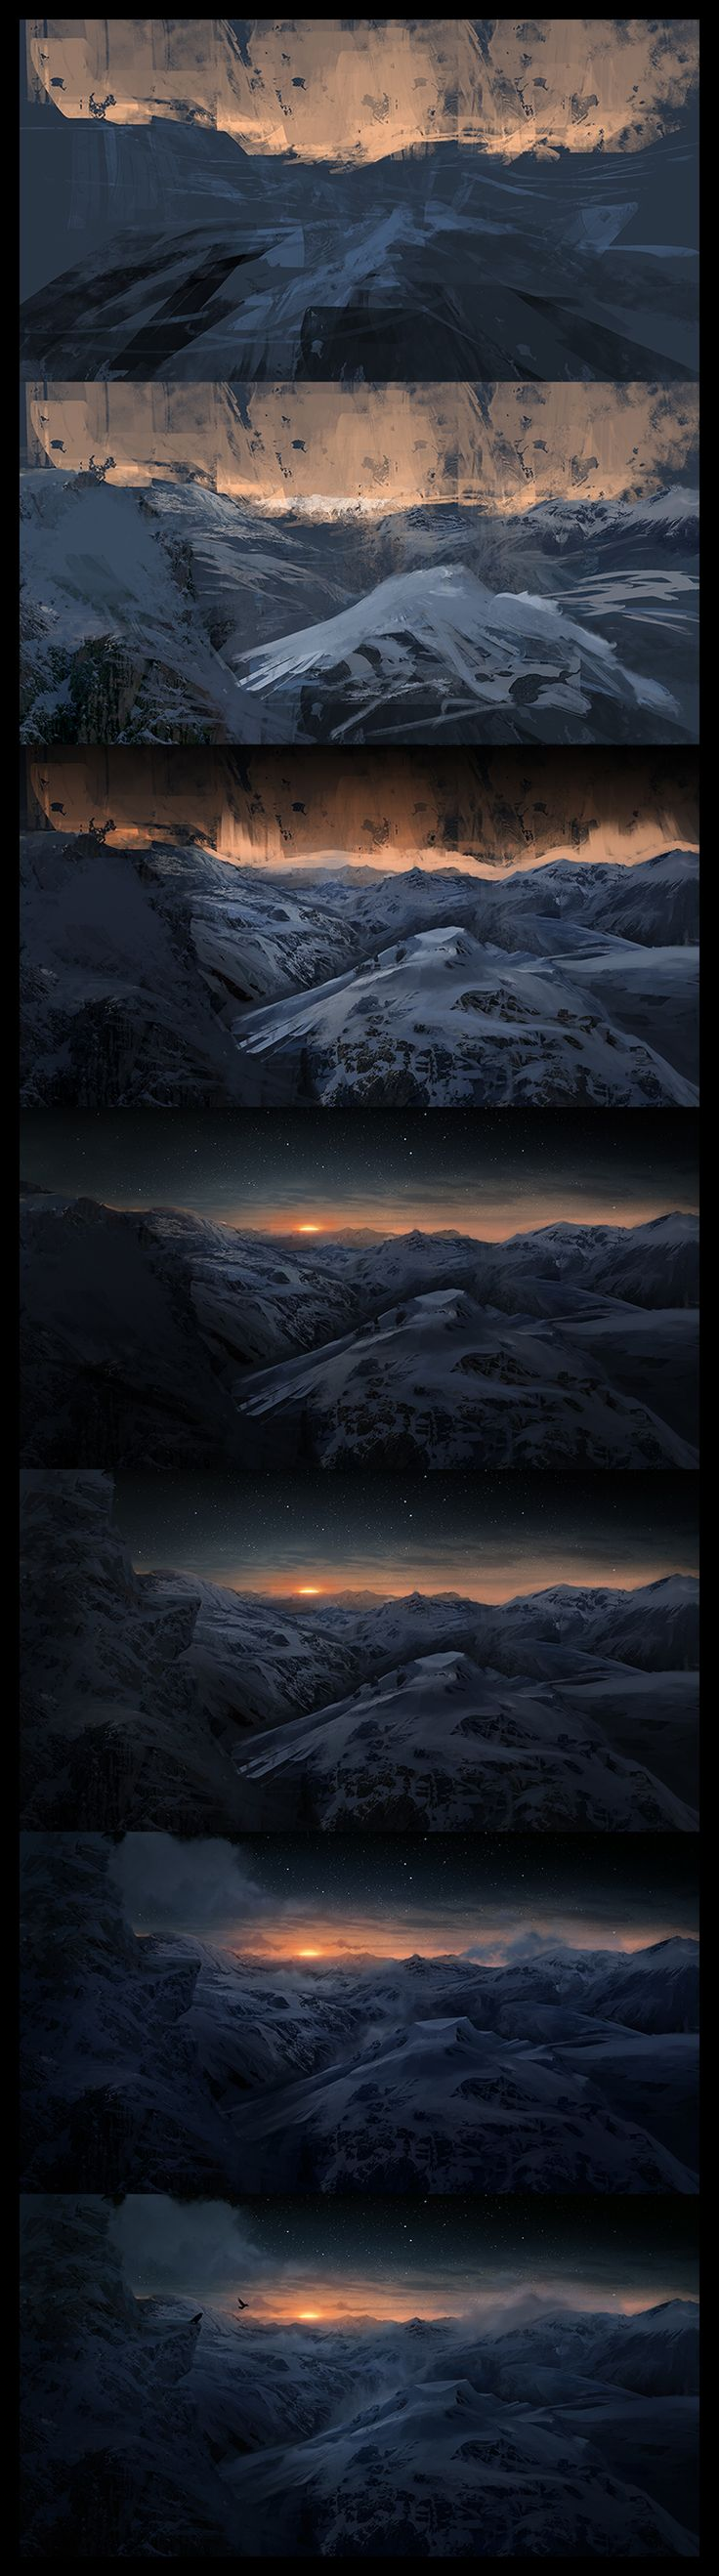 Sunrise Mountains Steps by Lapec on DeviantArt via cgpin.com